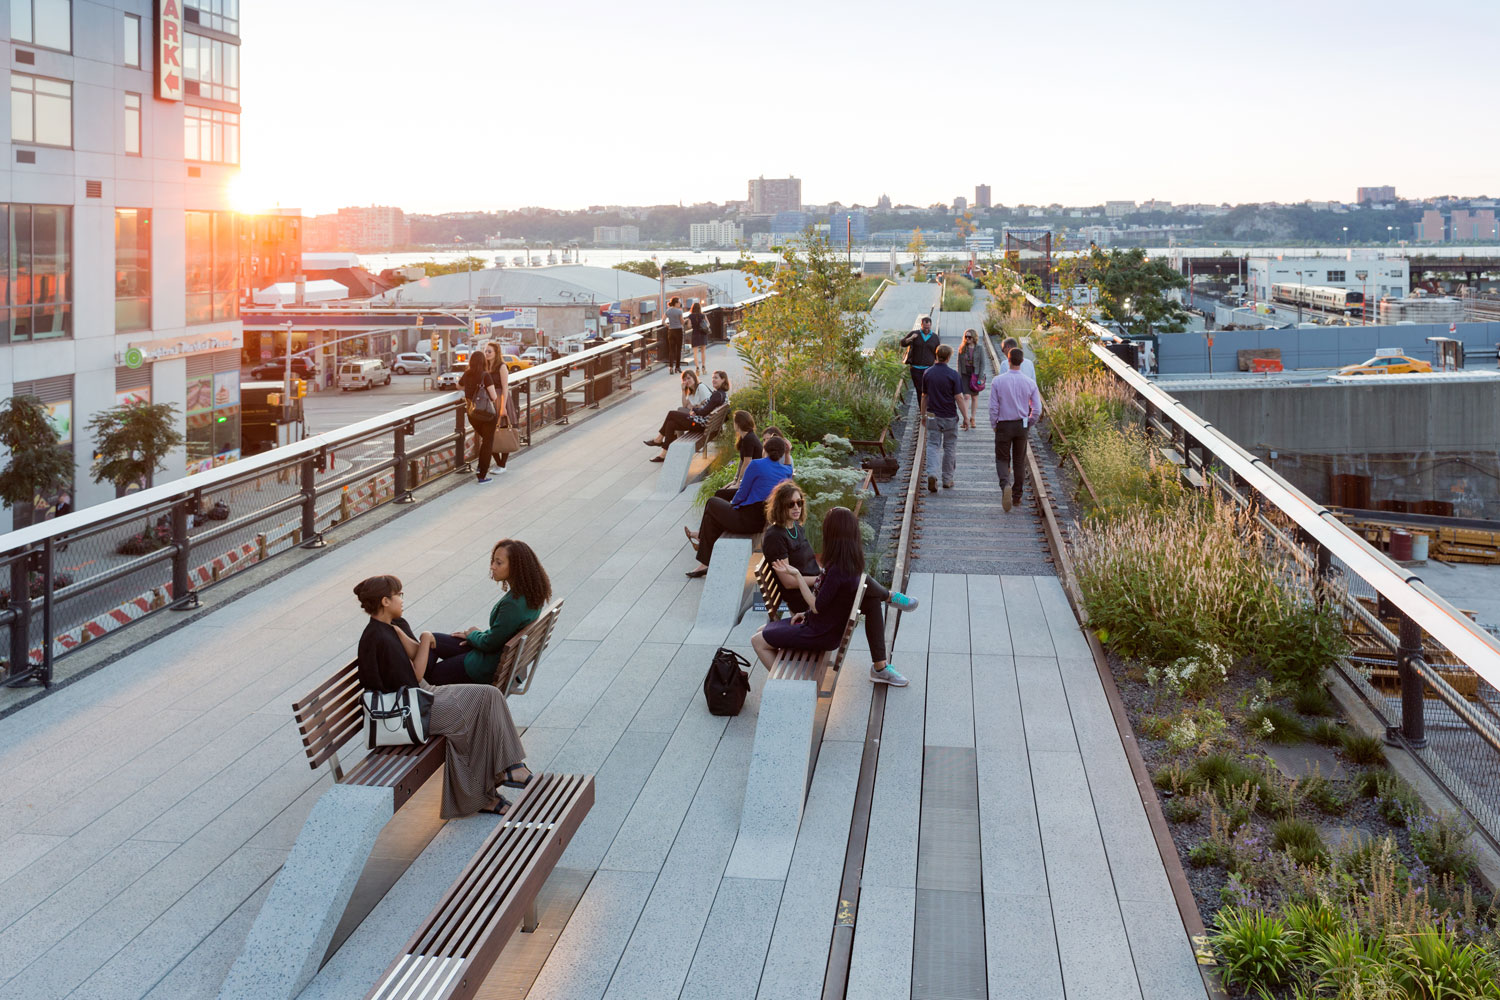 Greenbuilding magazine, High Line, New York. Photo by Iwan Baan